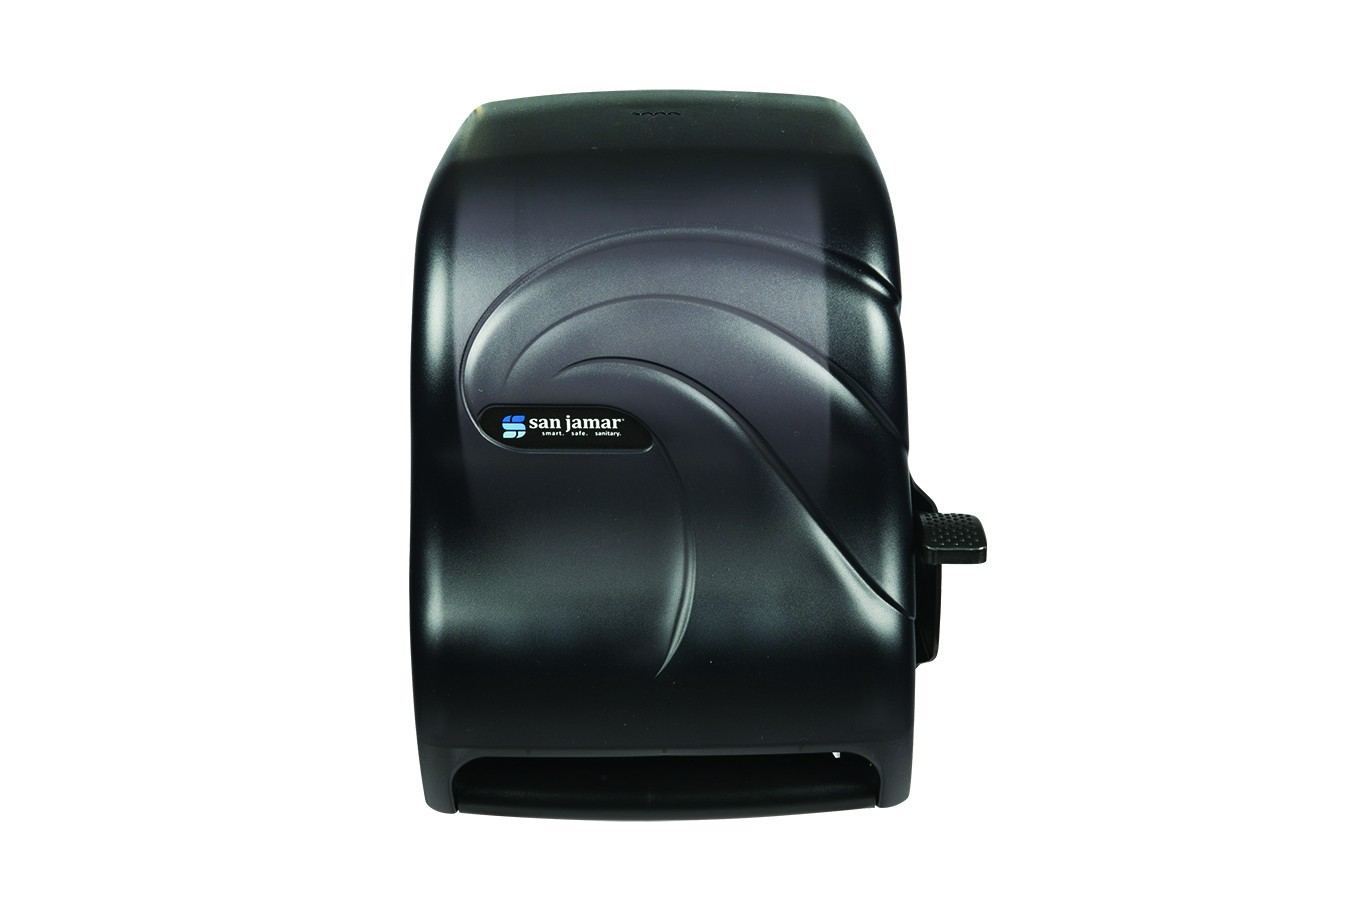 San Jamar T1190TBK Oceans Black Pearl Lever Touch Roll Towel Dispenser